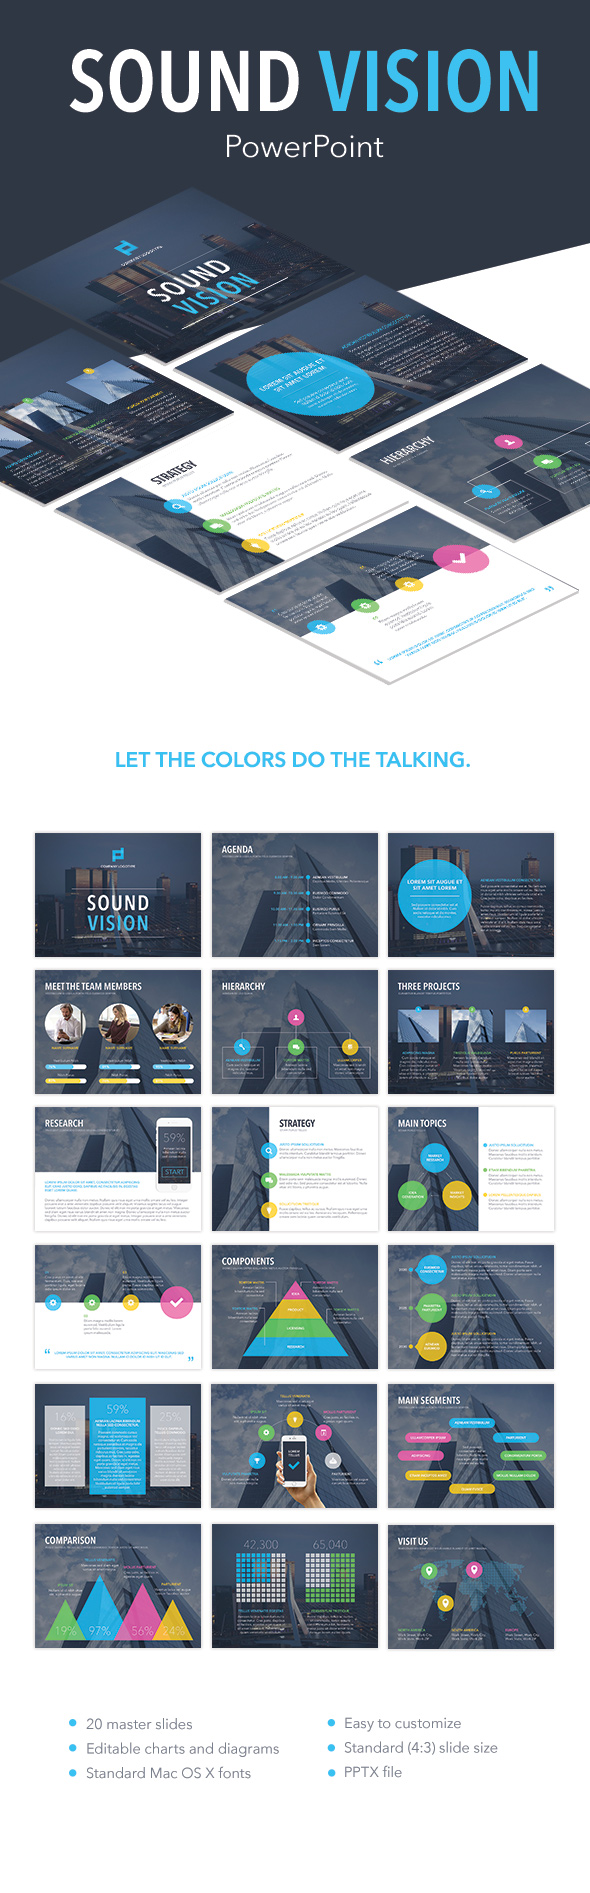 Sound vision powerpoint template by jumsoft graphicriver sound vision powerpoint template powerpoint templates presentation templates toneelgroepblik Choice Image